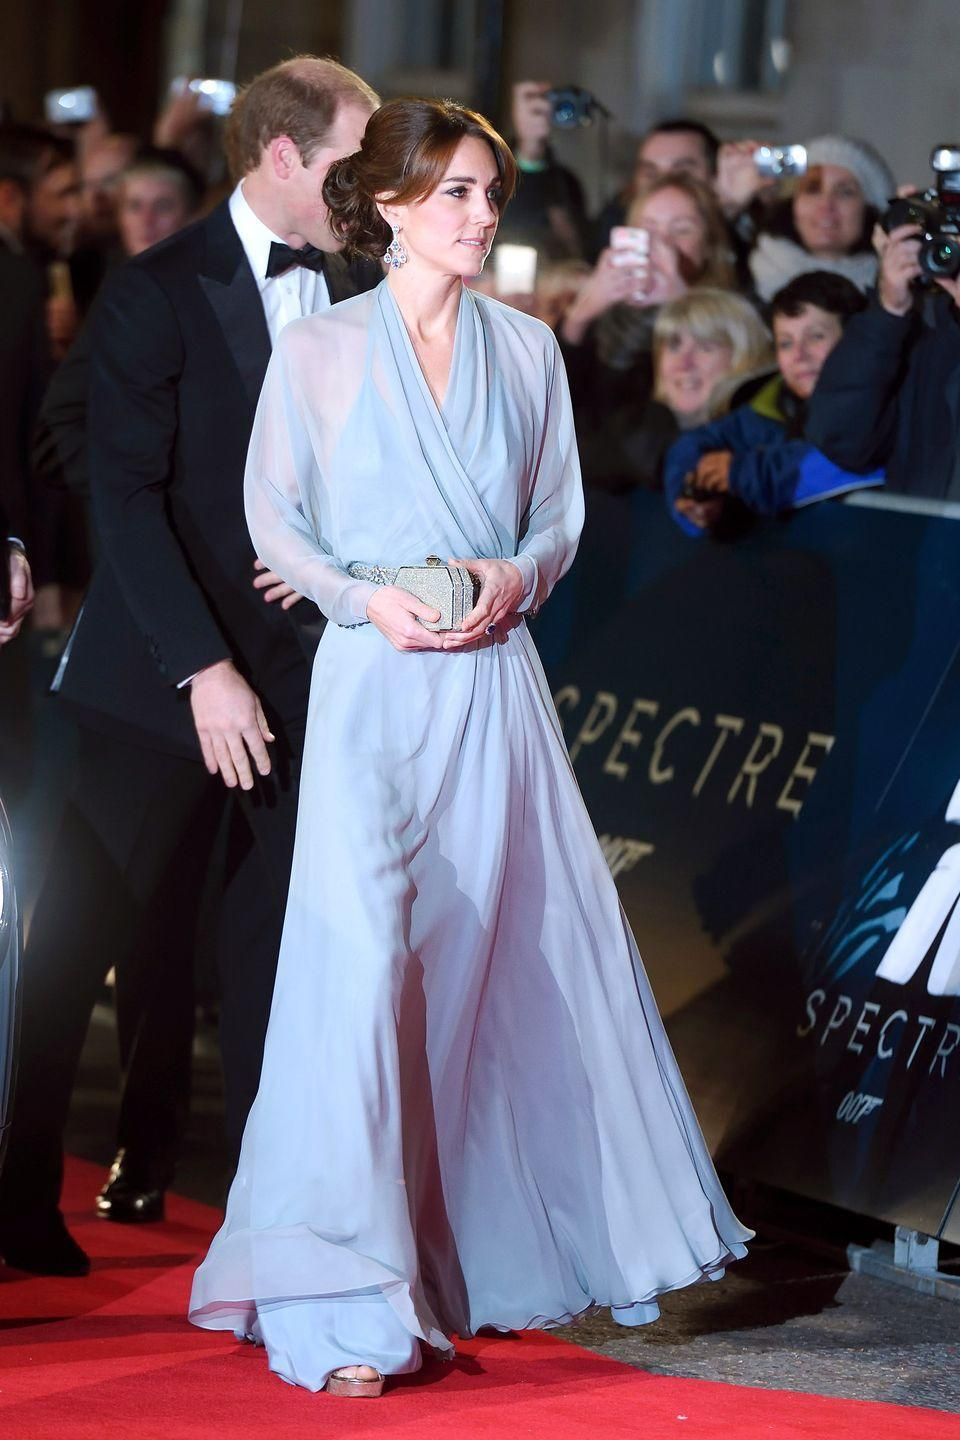 <p>Kate wears Jenny Packham at the premiere of <em>Spectre </em>at Royal Albert Hall in London.</p>